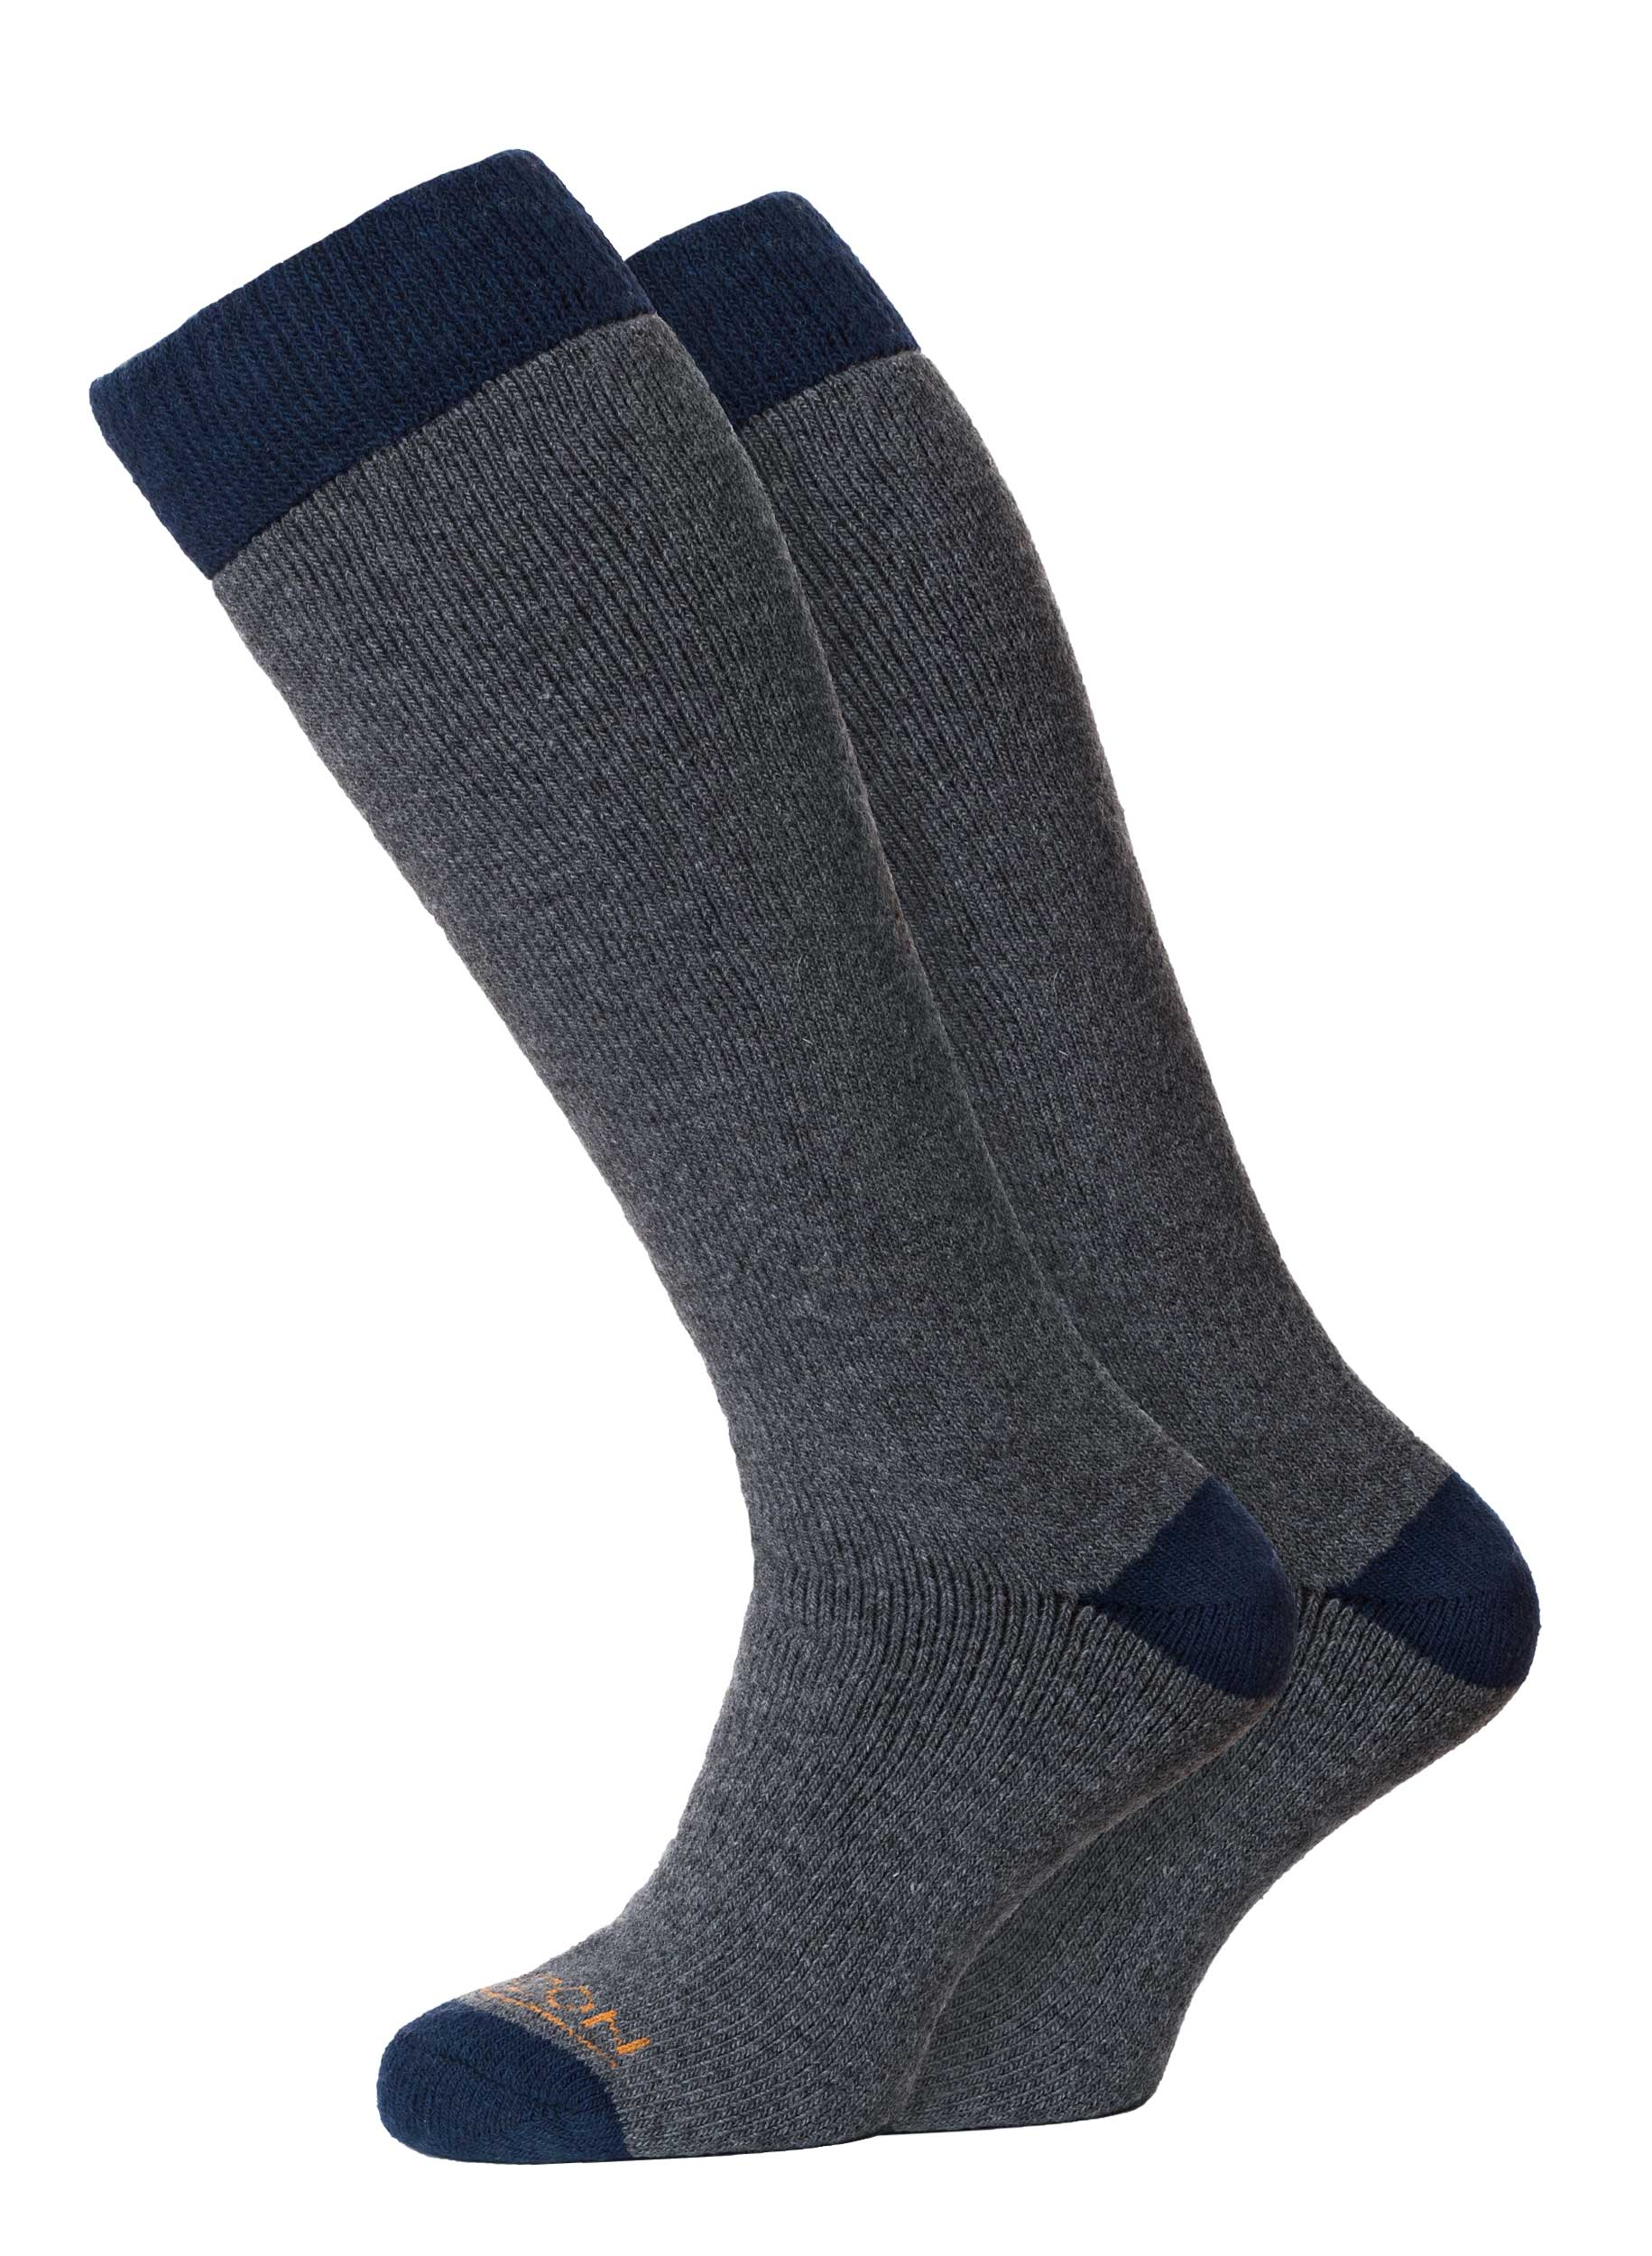 Winter Sport Merino 2pk Charcoal/Navy